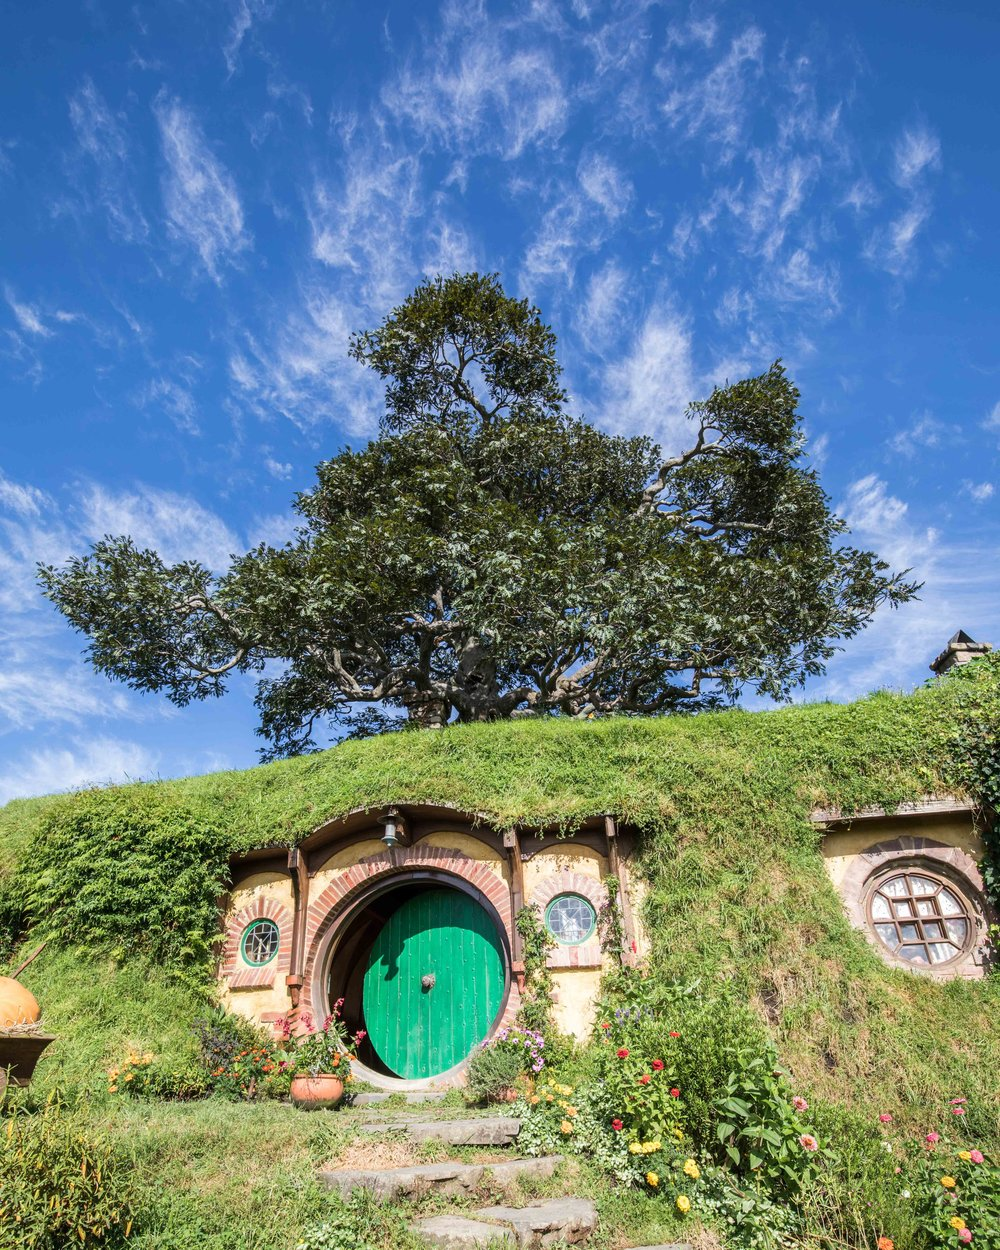 Instagrammable spots in New Zealand: Hobbiton